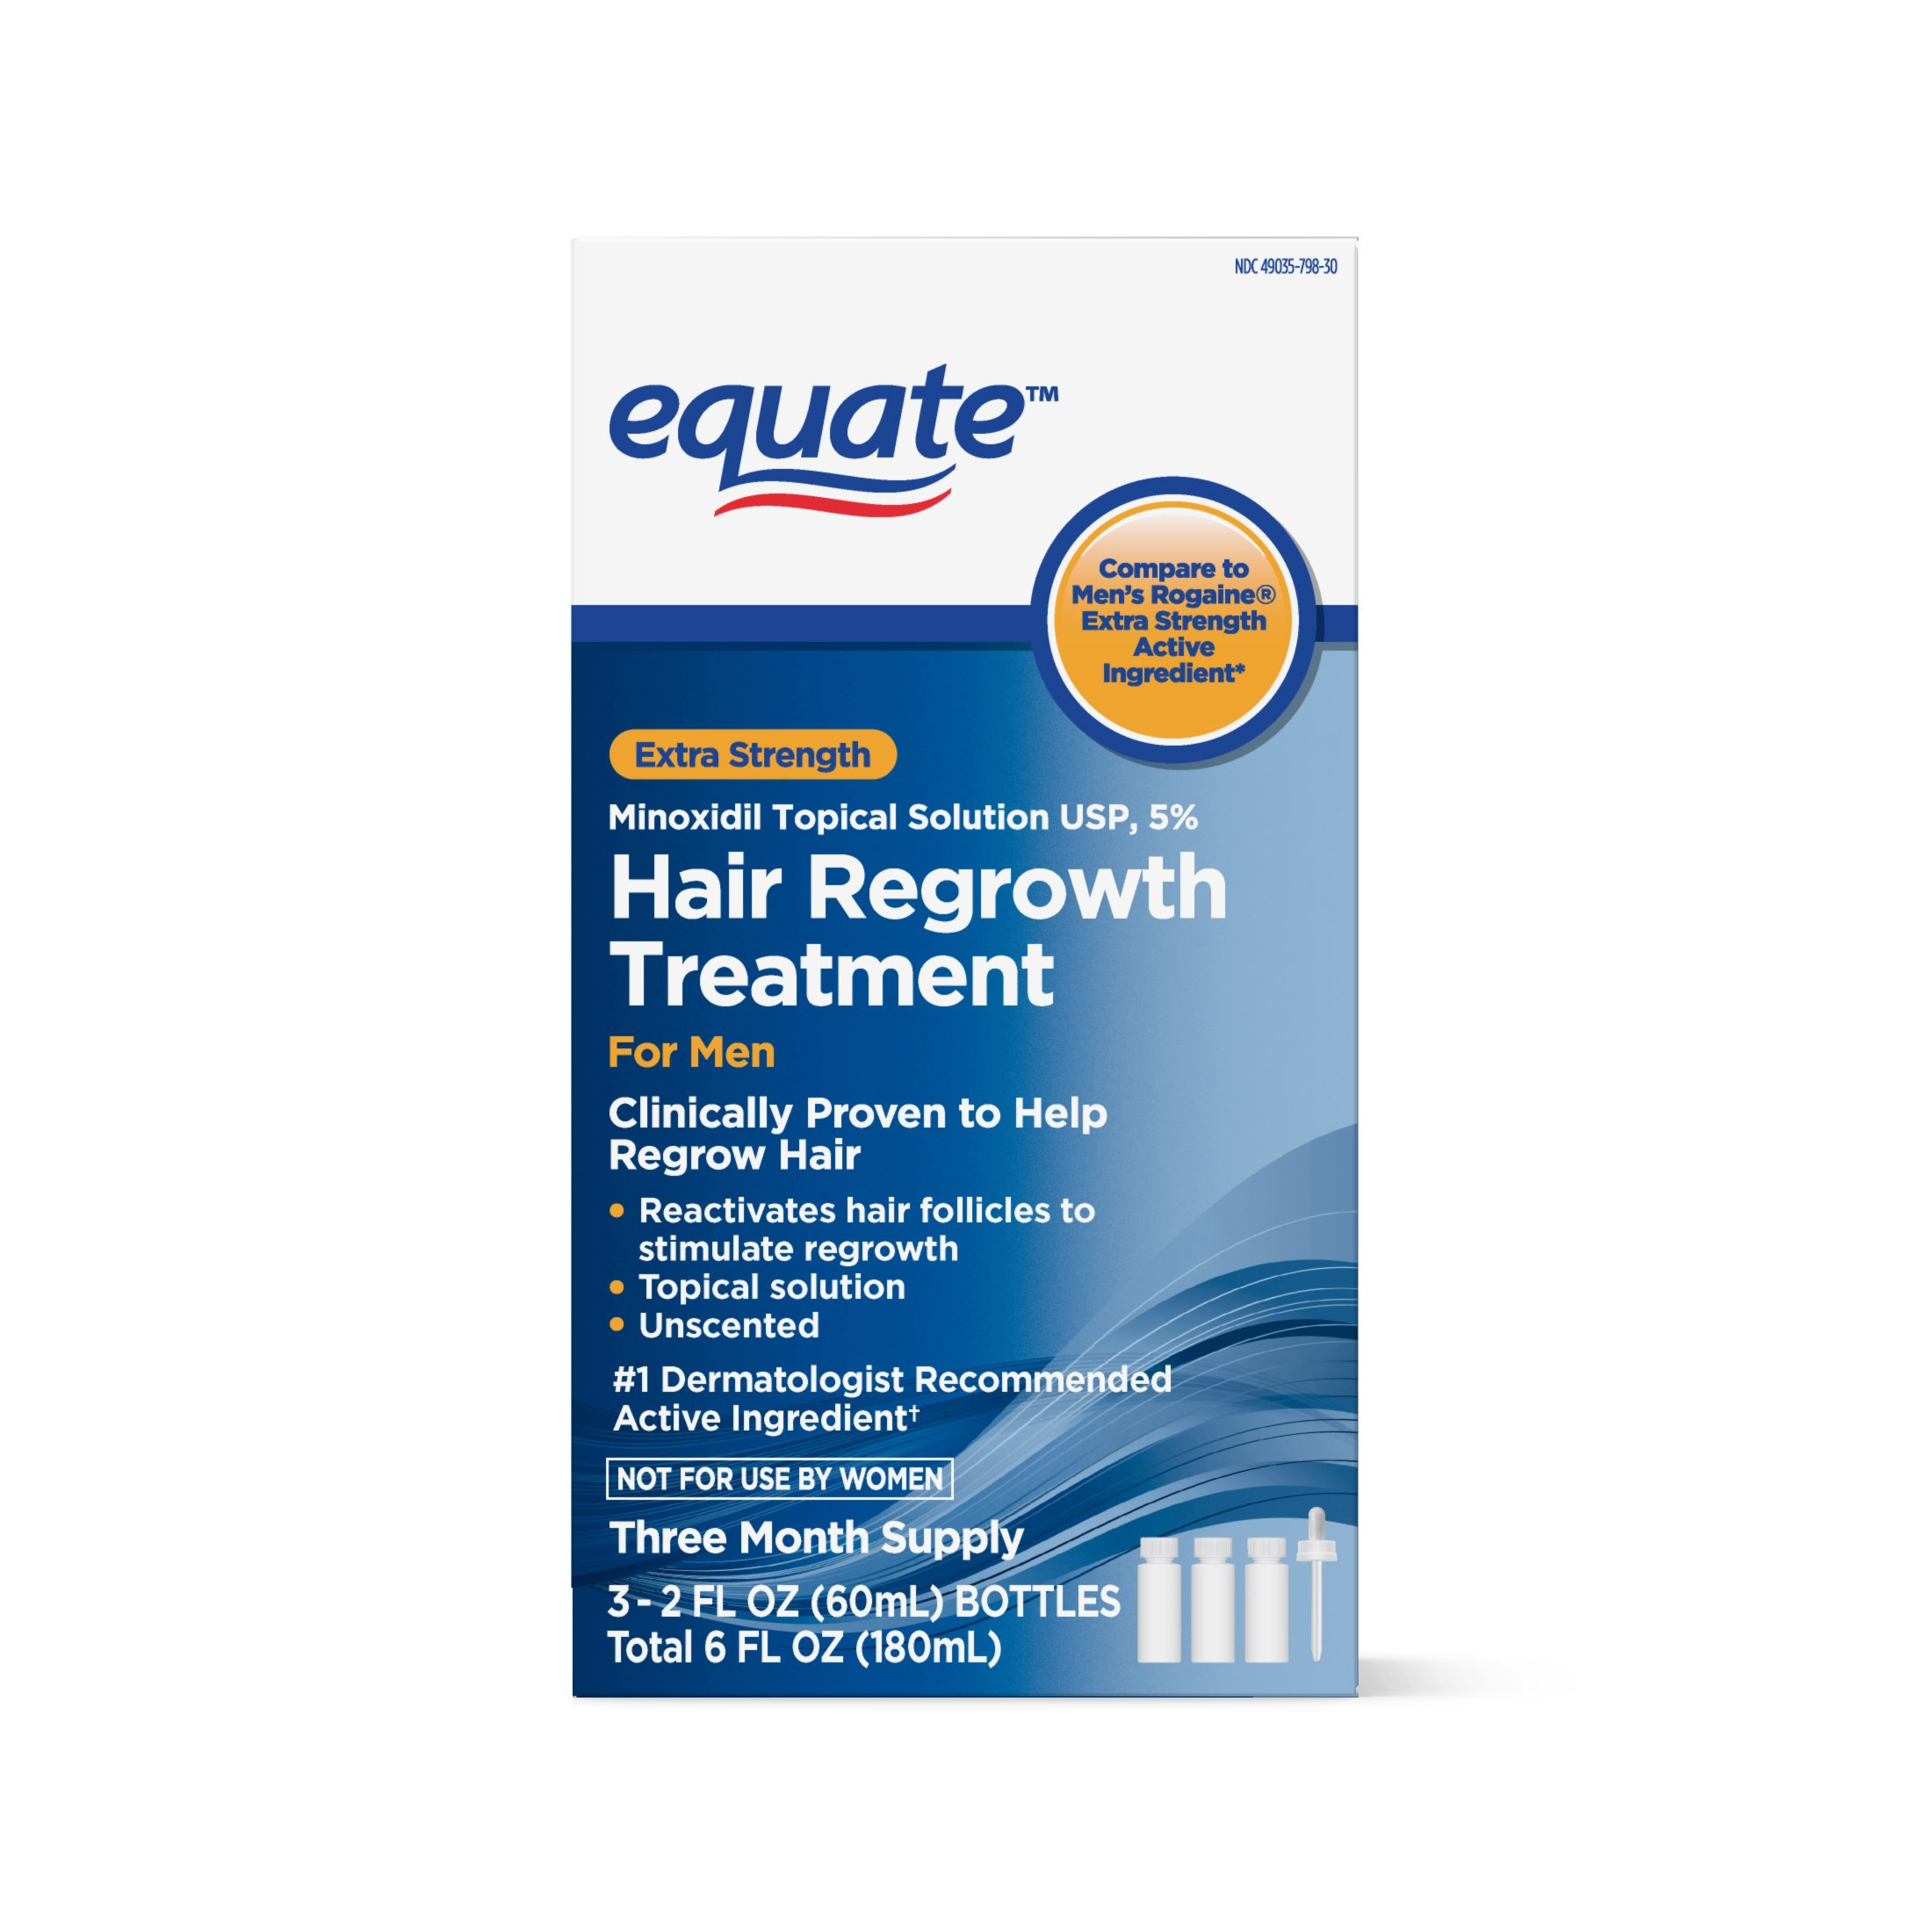 Equate - Hair Regrowth Treatment for Men with Minoxidil 5% Extra Strength, 3 Month Supply, 2 Ounce Bottle, 3 Count